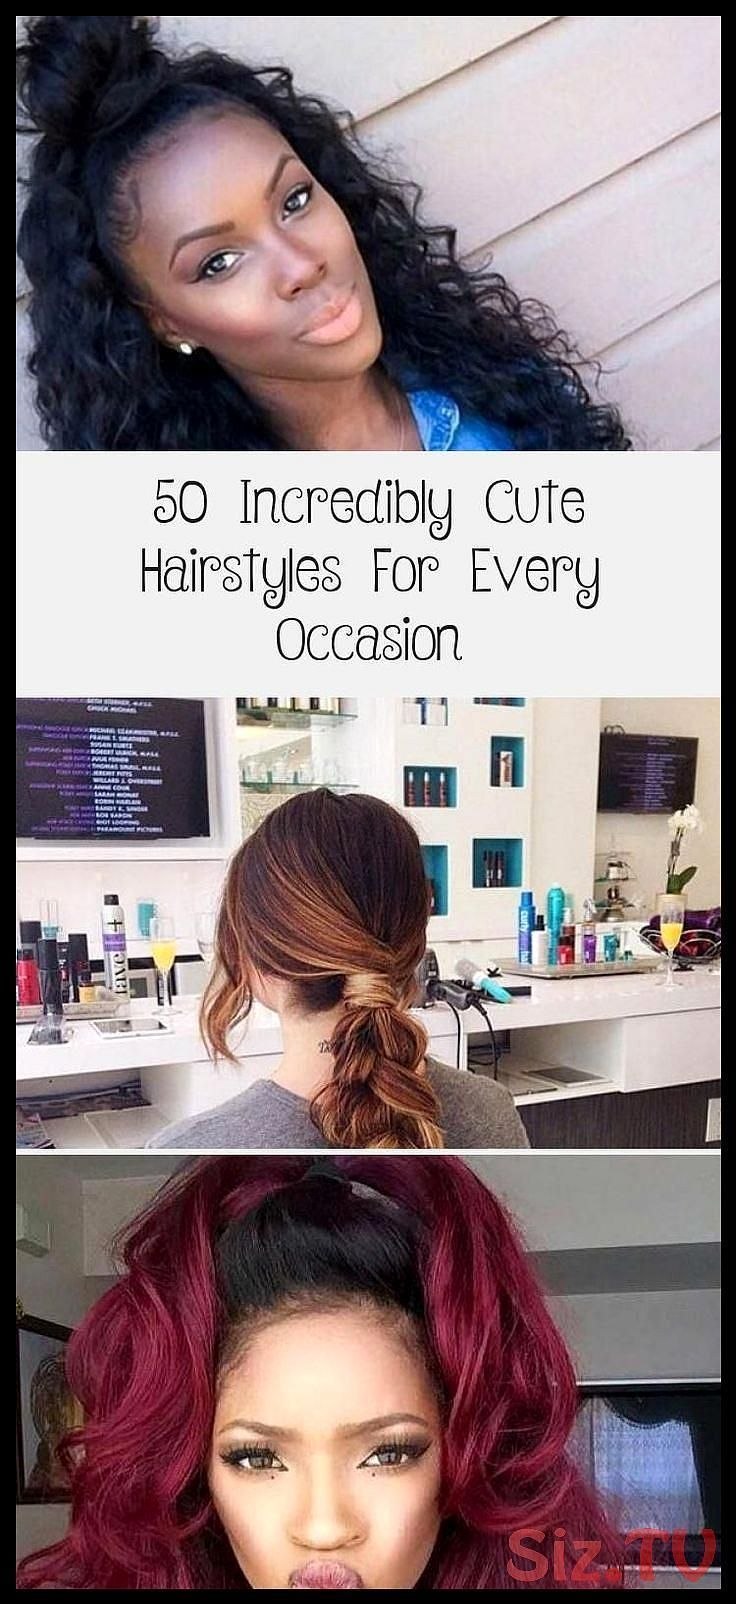 50 Incredibly Cute Hairstyles For Every Occasion braidedtopknots Braided top knot half updo and tons of other cute hair tutorials that can make your 50 Incredibly Cute Hairstyles For Every Occasion braidedtopknots Braided top knot half updo and tons of other cute hair tutorials that can make your Soite Save Images Soite 50 Incredibly Cute Hairstyles For Every Occasion braidedtopknots Braided top knot half updo and #braided #braidedtopknots #hairstyles #incredibly #messybuntopknothalfup #occasion